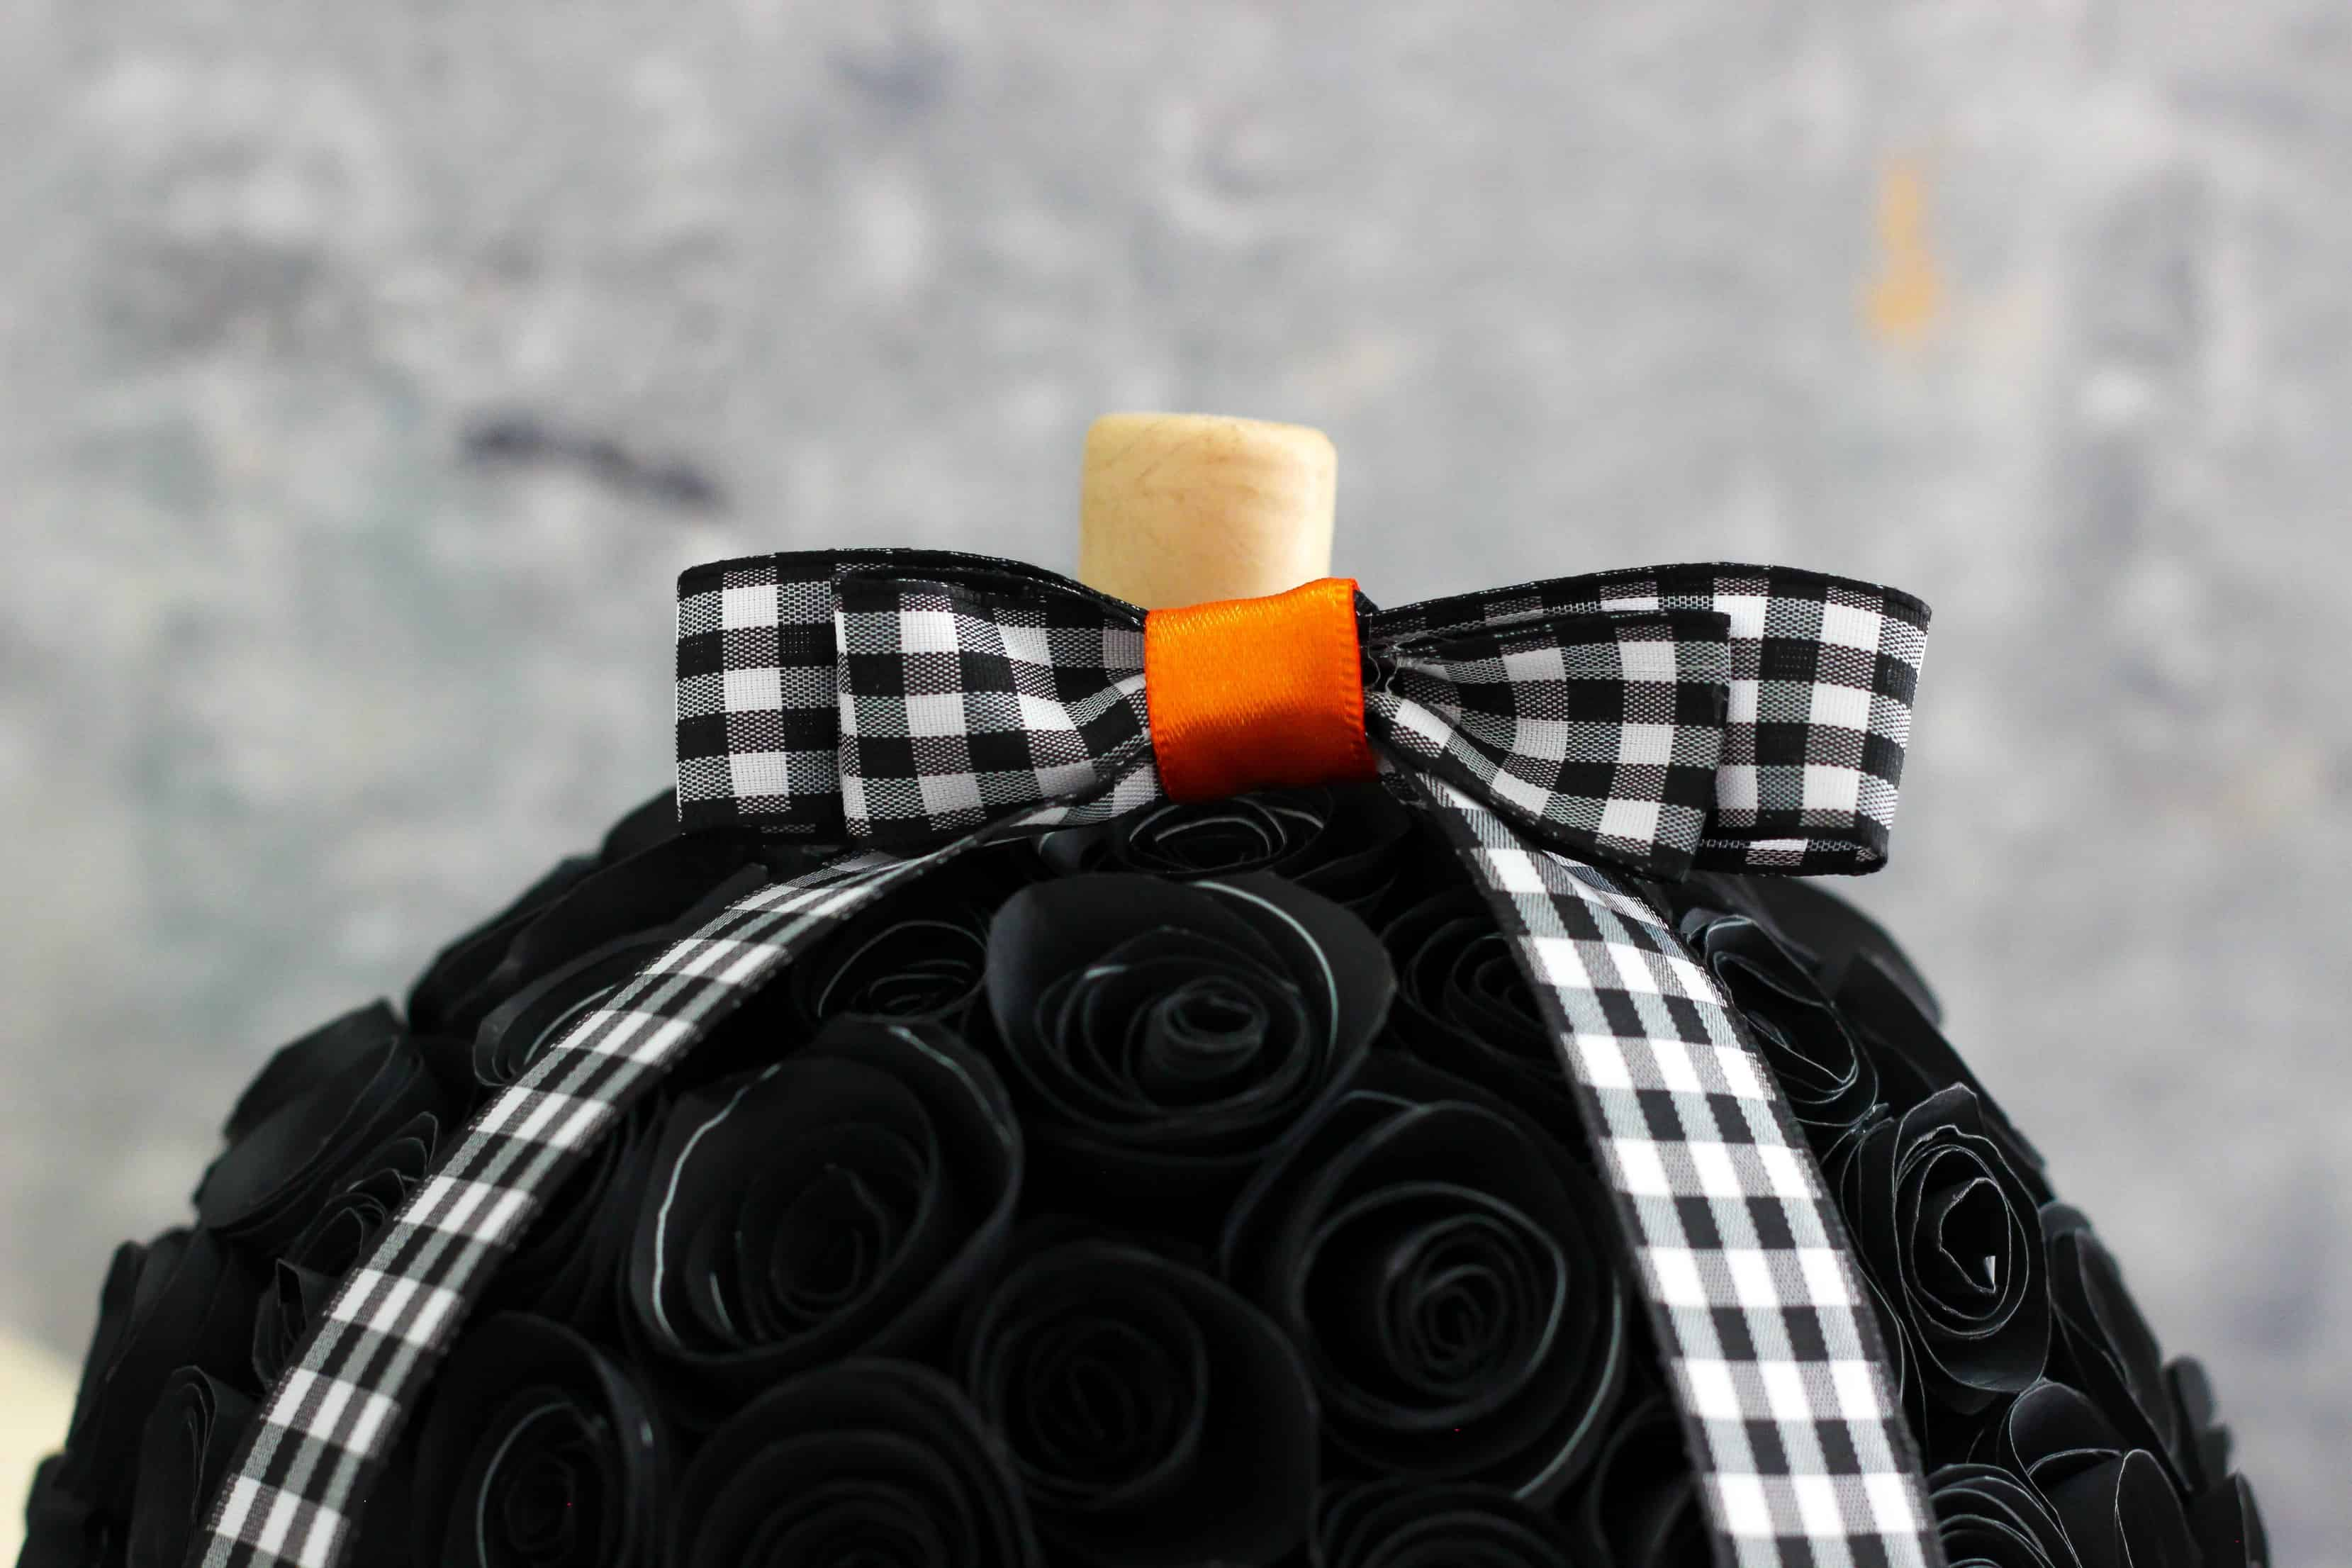 Make your own Rolled Paper Flower Pumpkin for Halloween using inexpensive and simple craft materials.